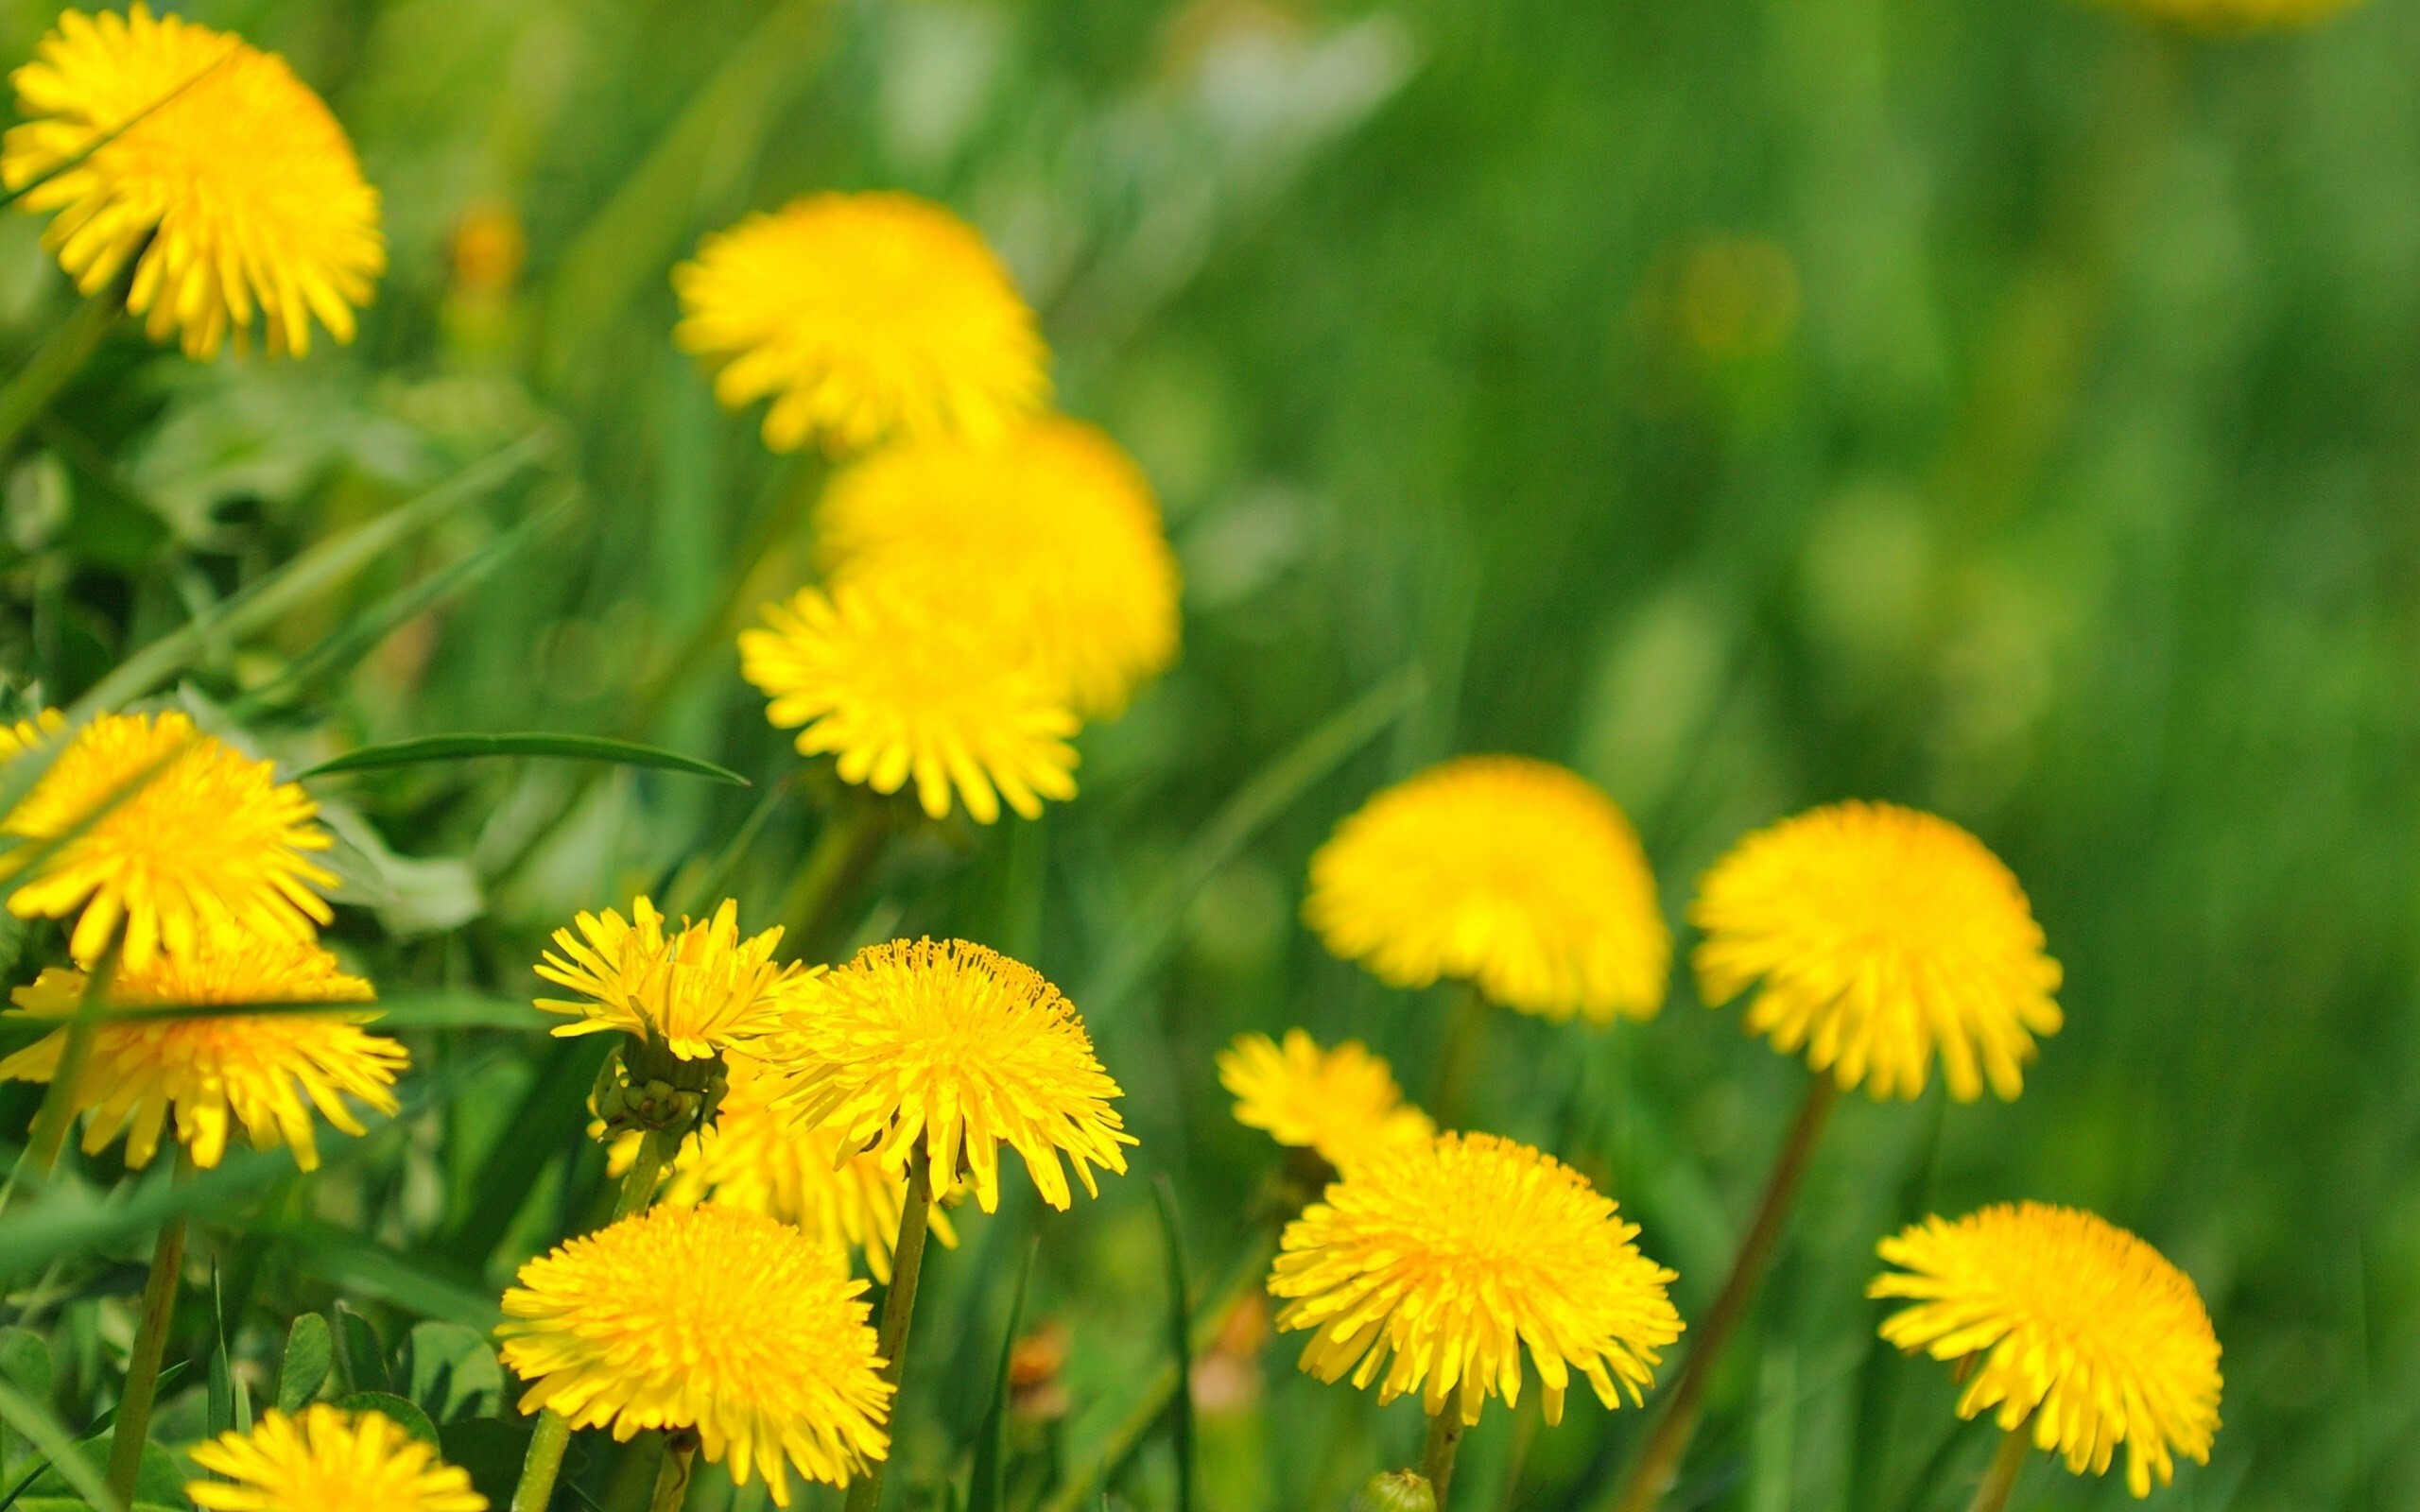 Yellow Flowers Hd Wallpapers Images Pictures Photos Download